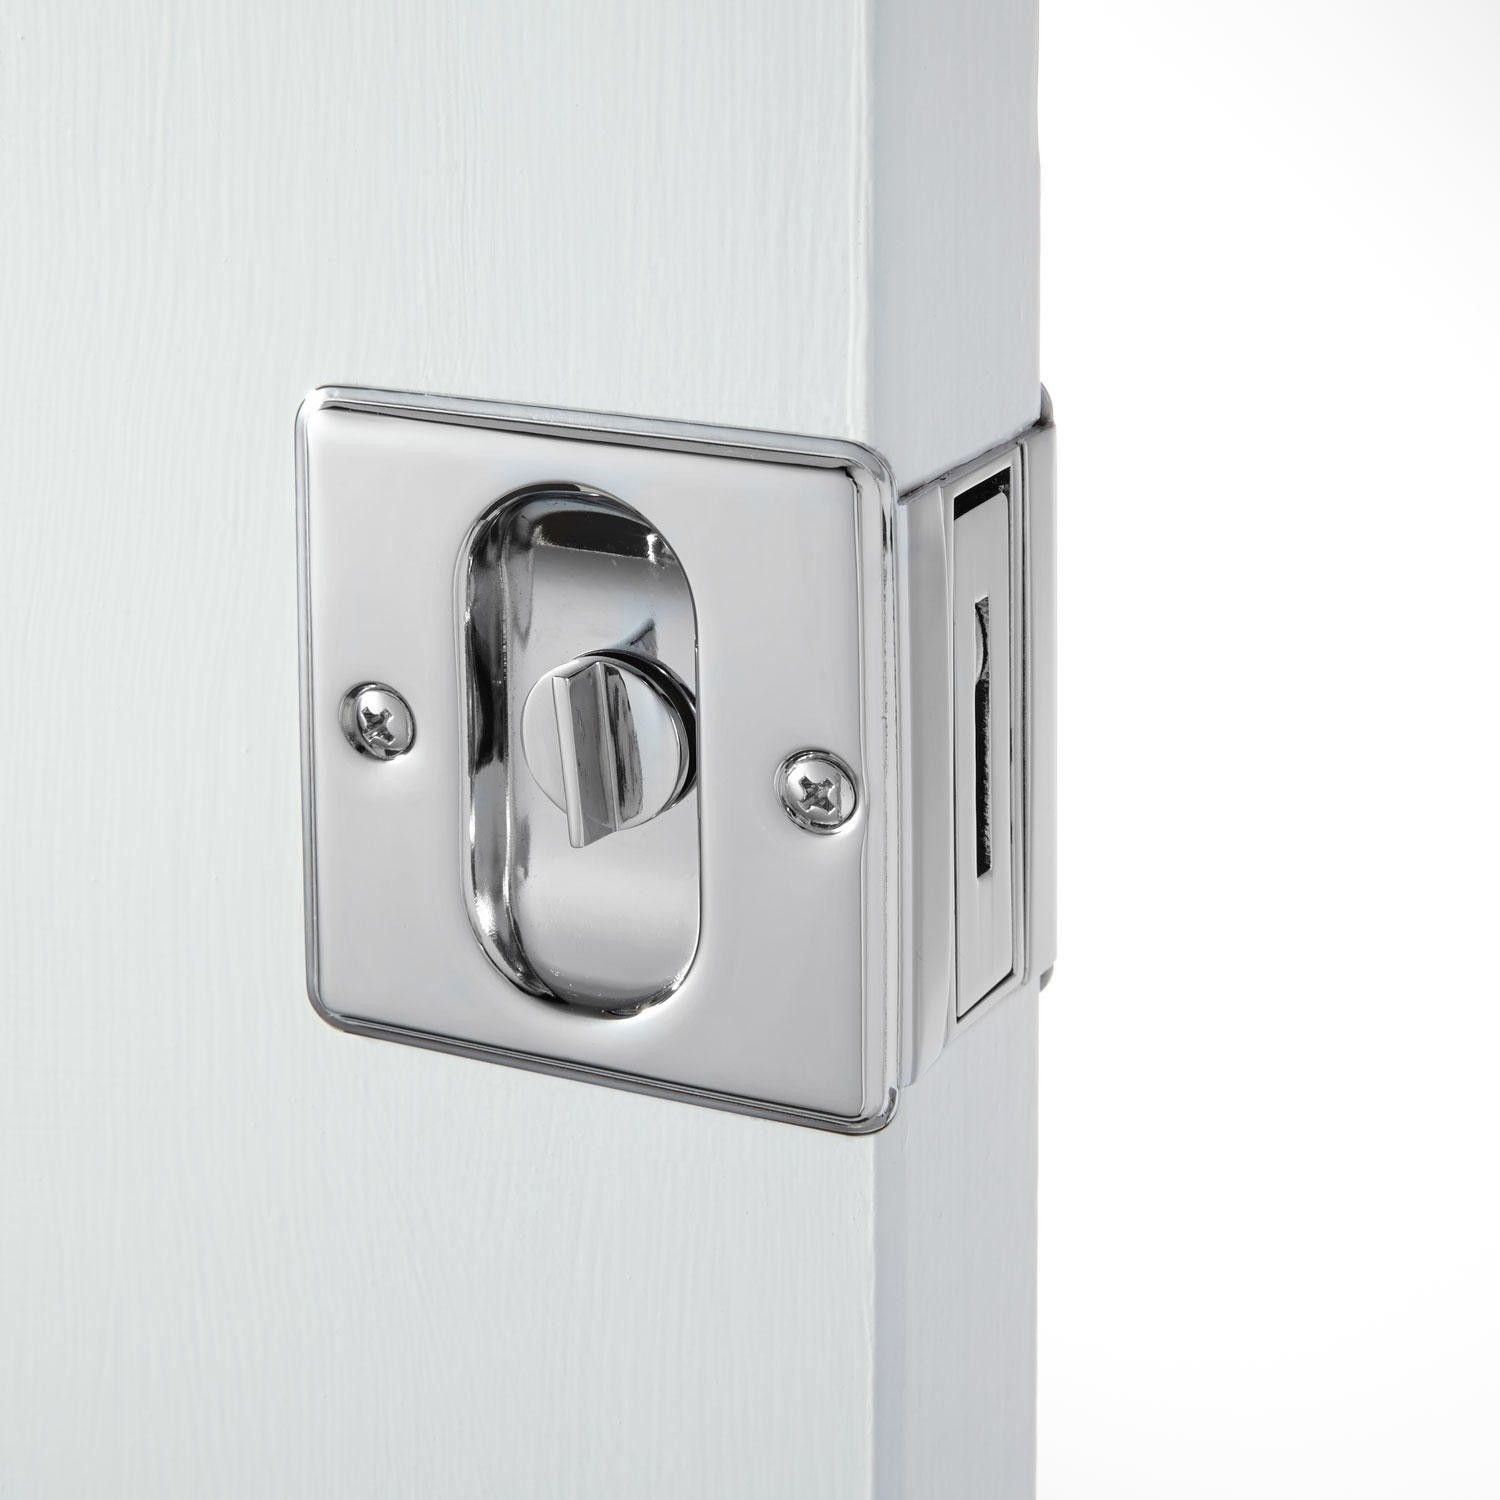 Security Pocket Door Hardware Pocket door pulls, Pocket